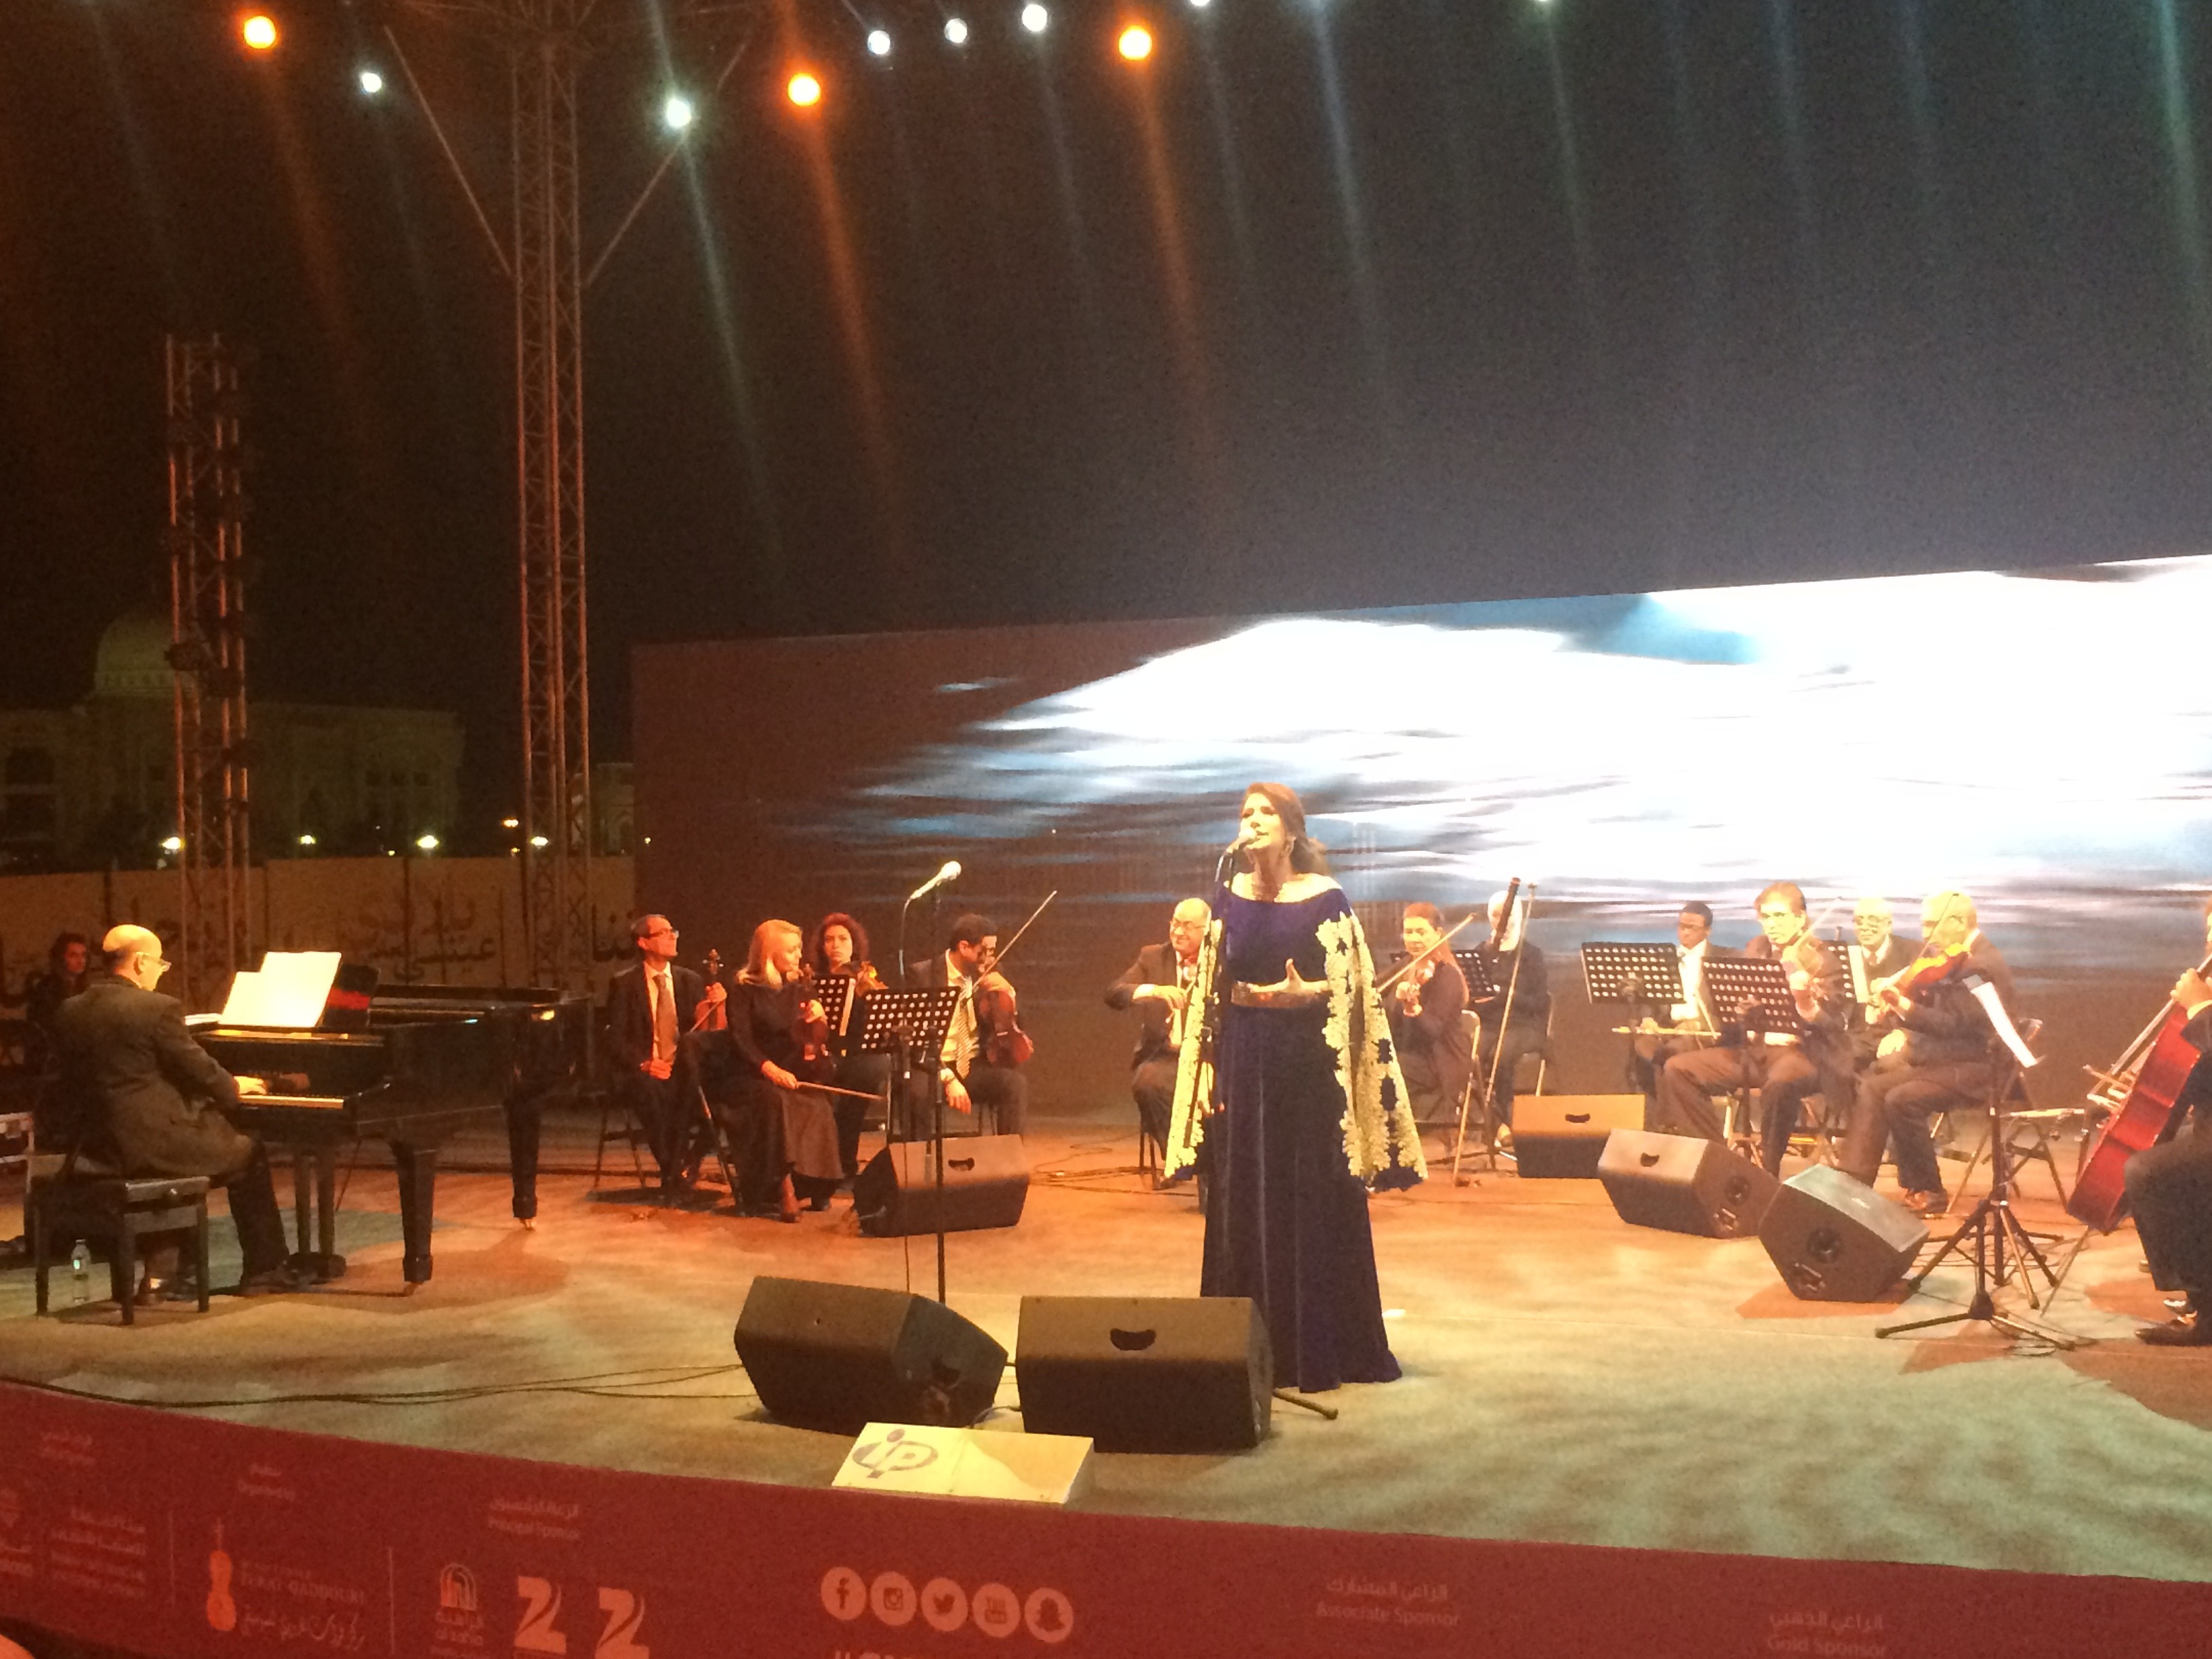 Jordanian National Orchestra Association (JOrchestra) headed by HE Dr. Talal Abu-Ghazaleh participates at the closing night of the third season  of Sharjah World Music Festival  at Al Alam Island in the UAE